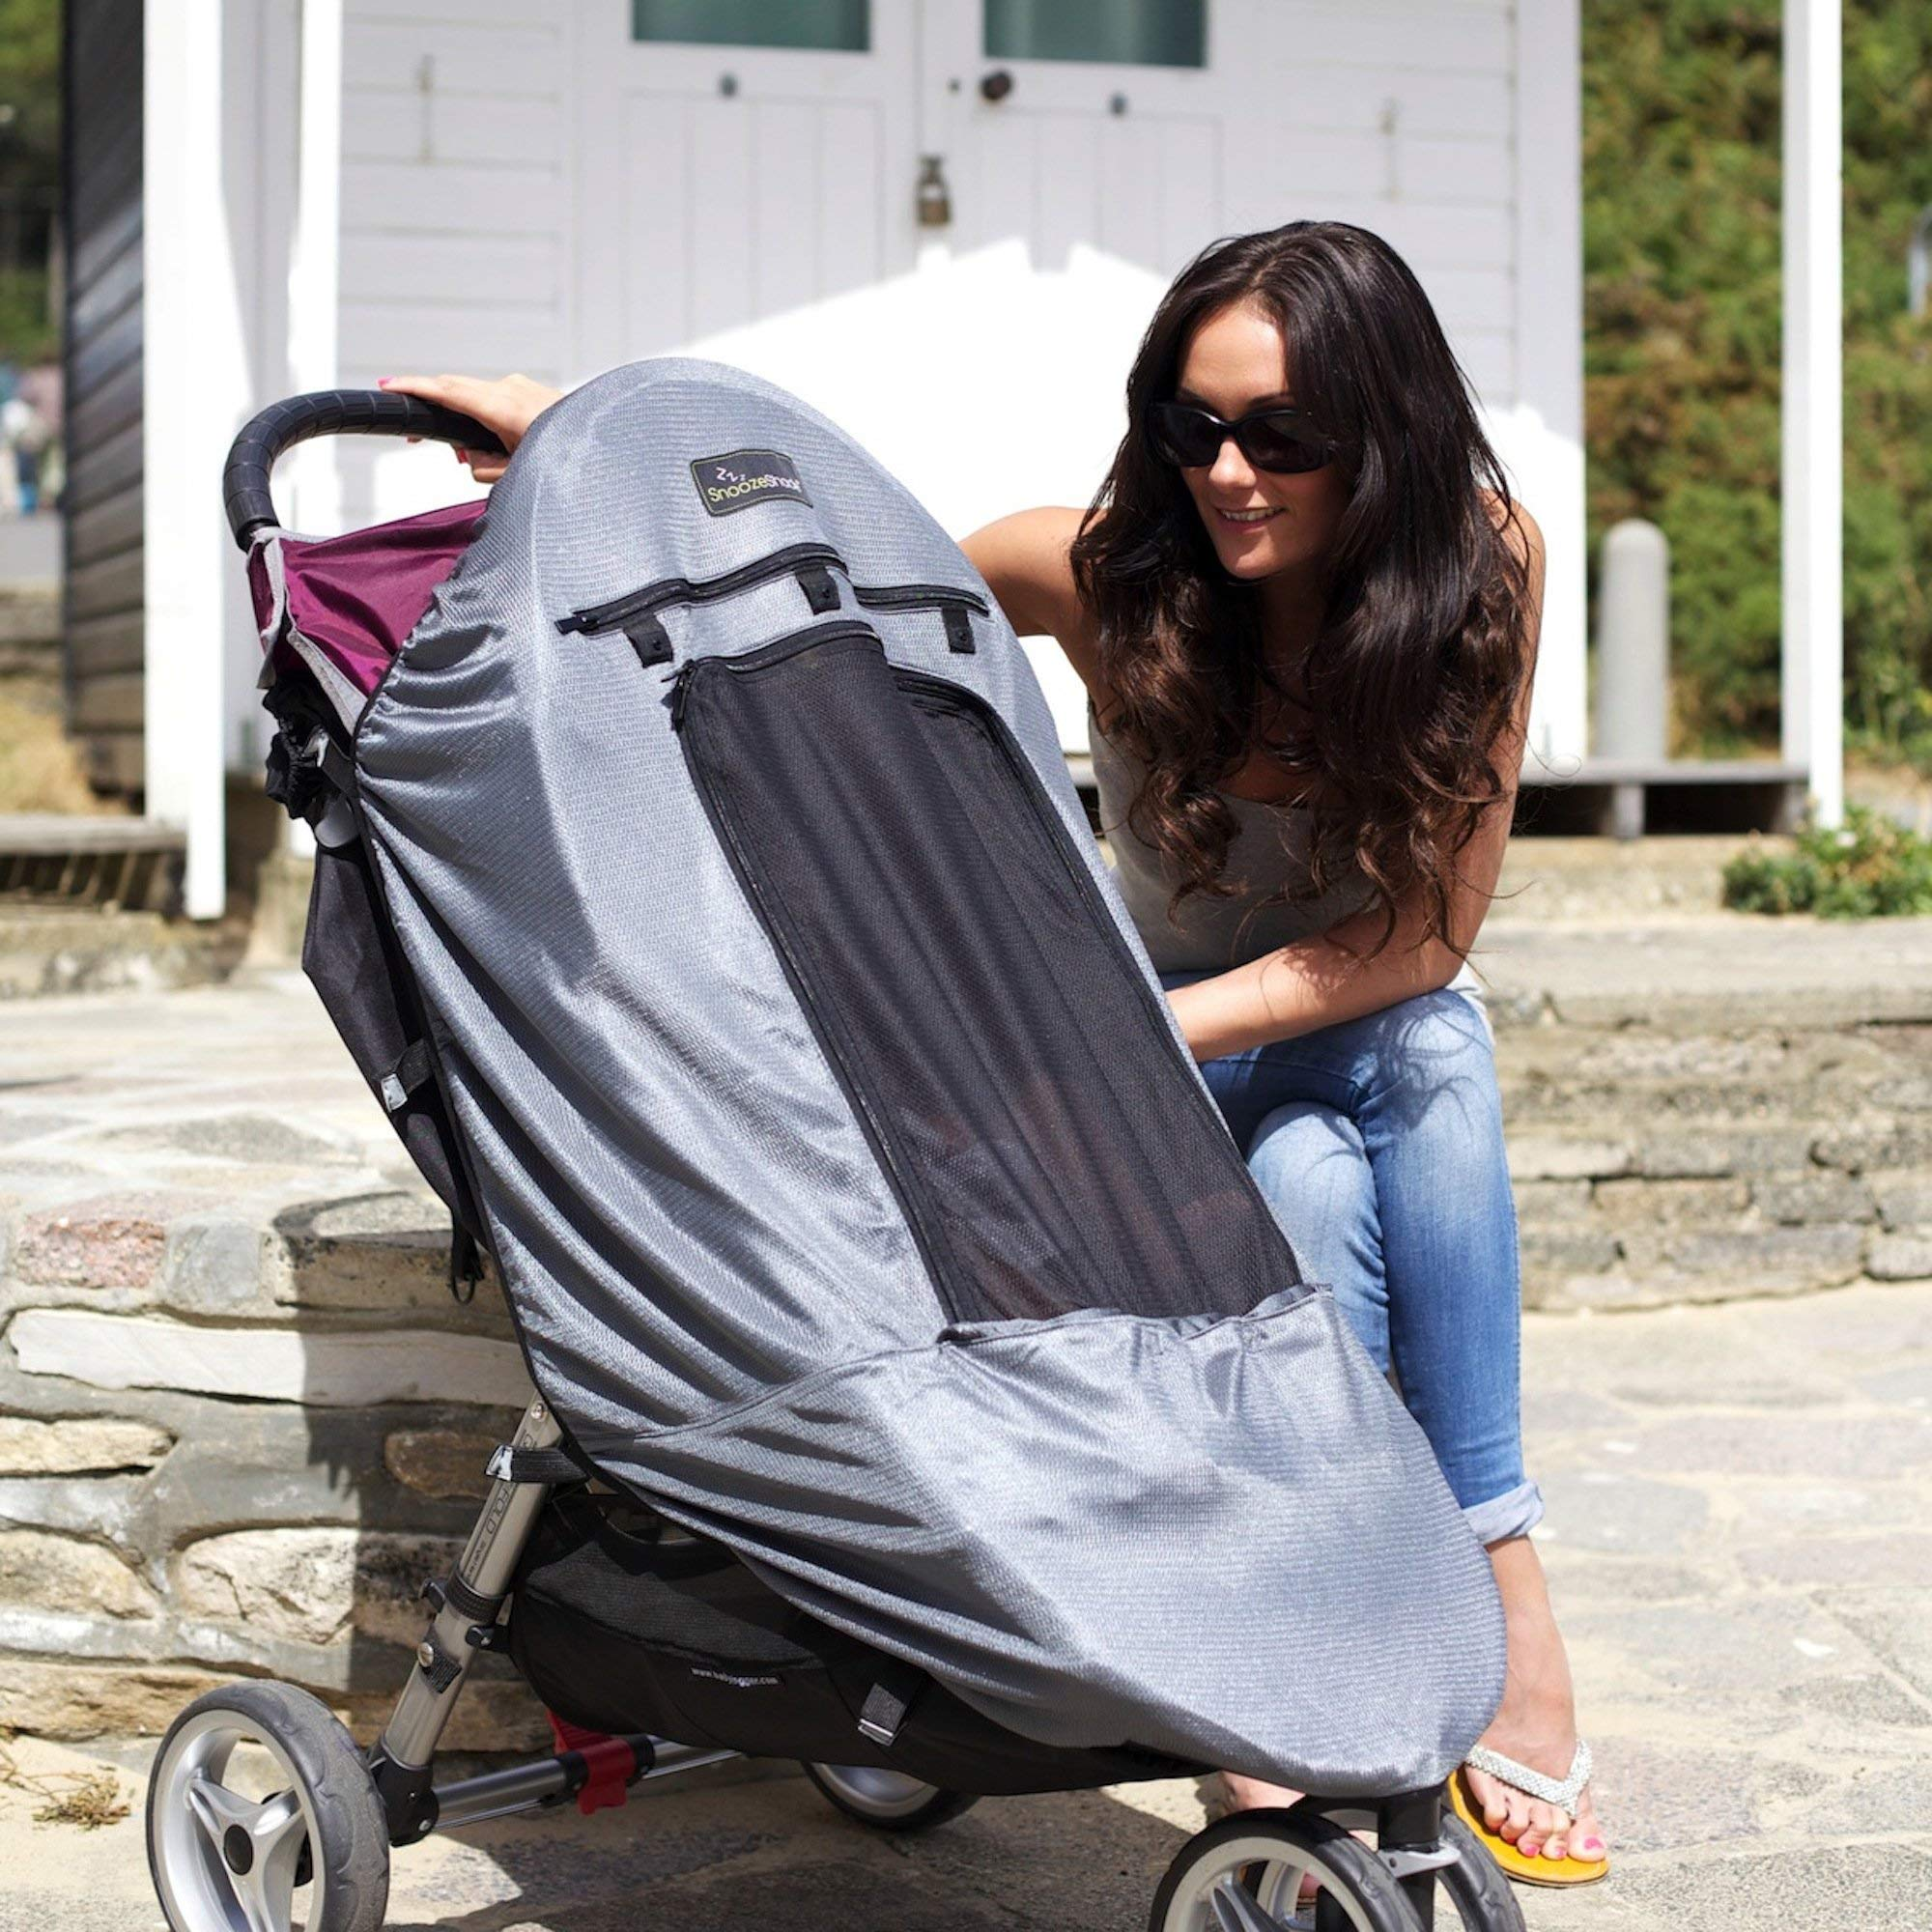 SnoozeShade Plus Deluxe | Universal fit sun shade for strollers | 360-degree sun and UV protection | Sleep shade and mosquito net | Recommended for 6m+ by SnoozeShade (Image #9)